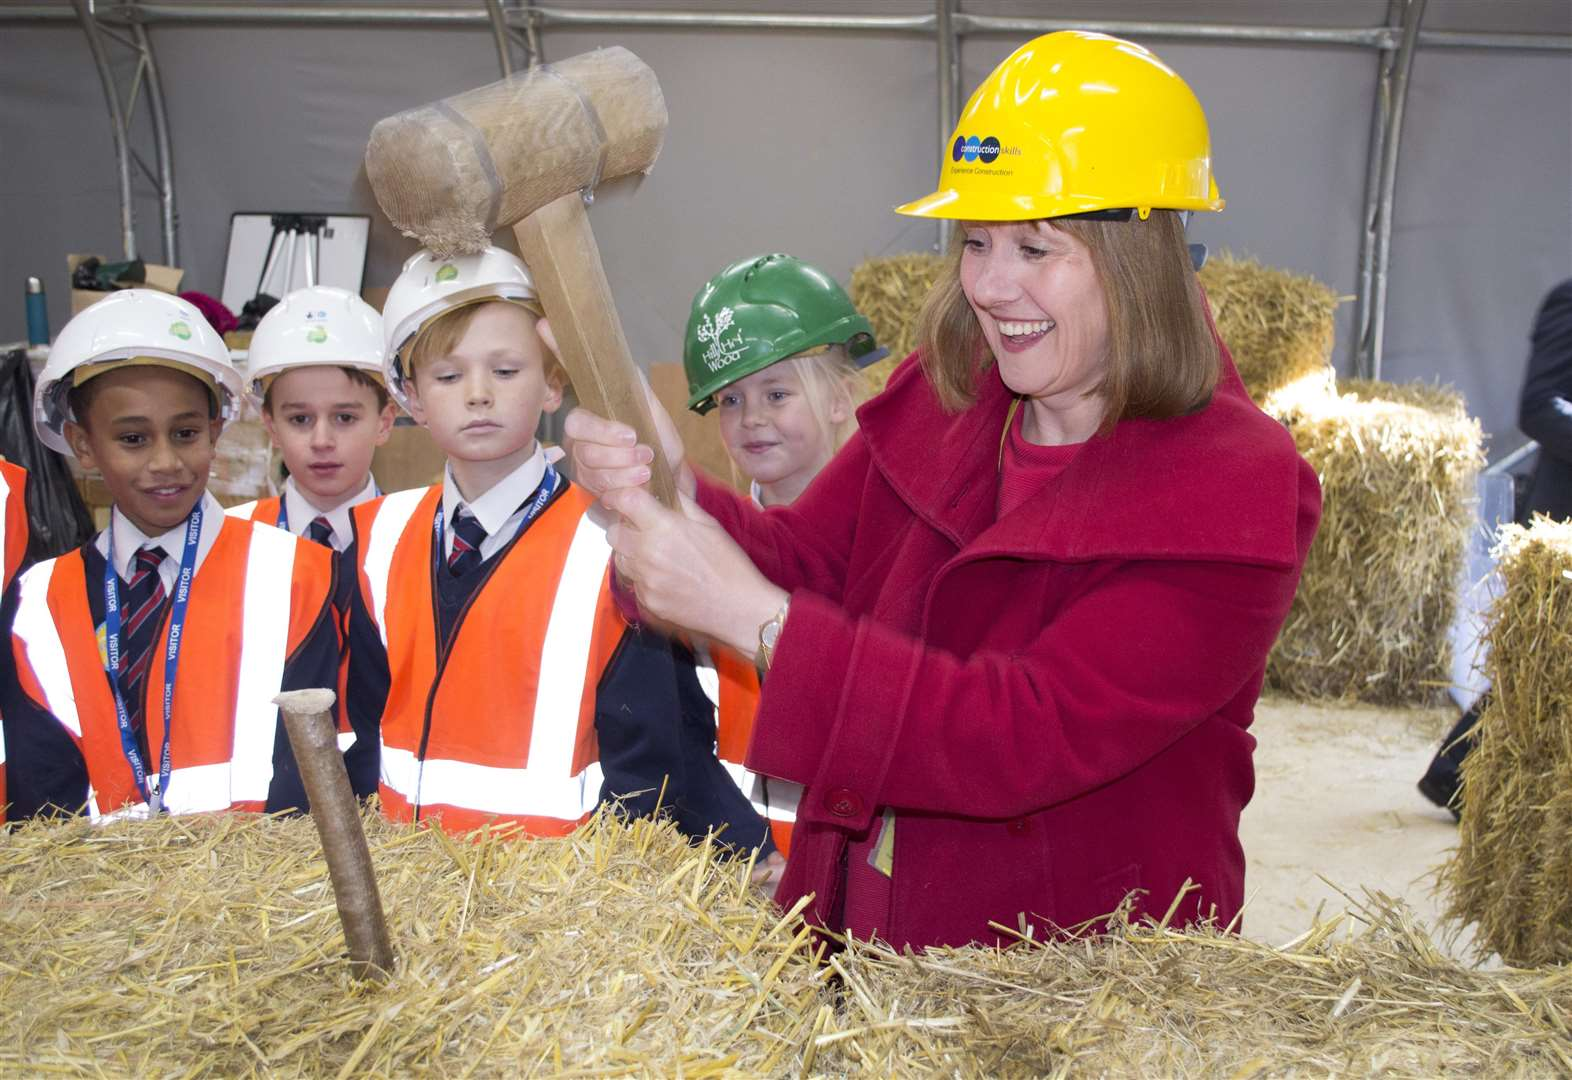 Secondary and primary school pupils try their hand at construction skills